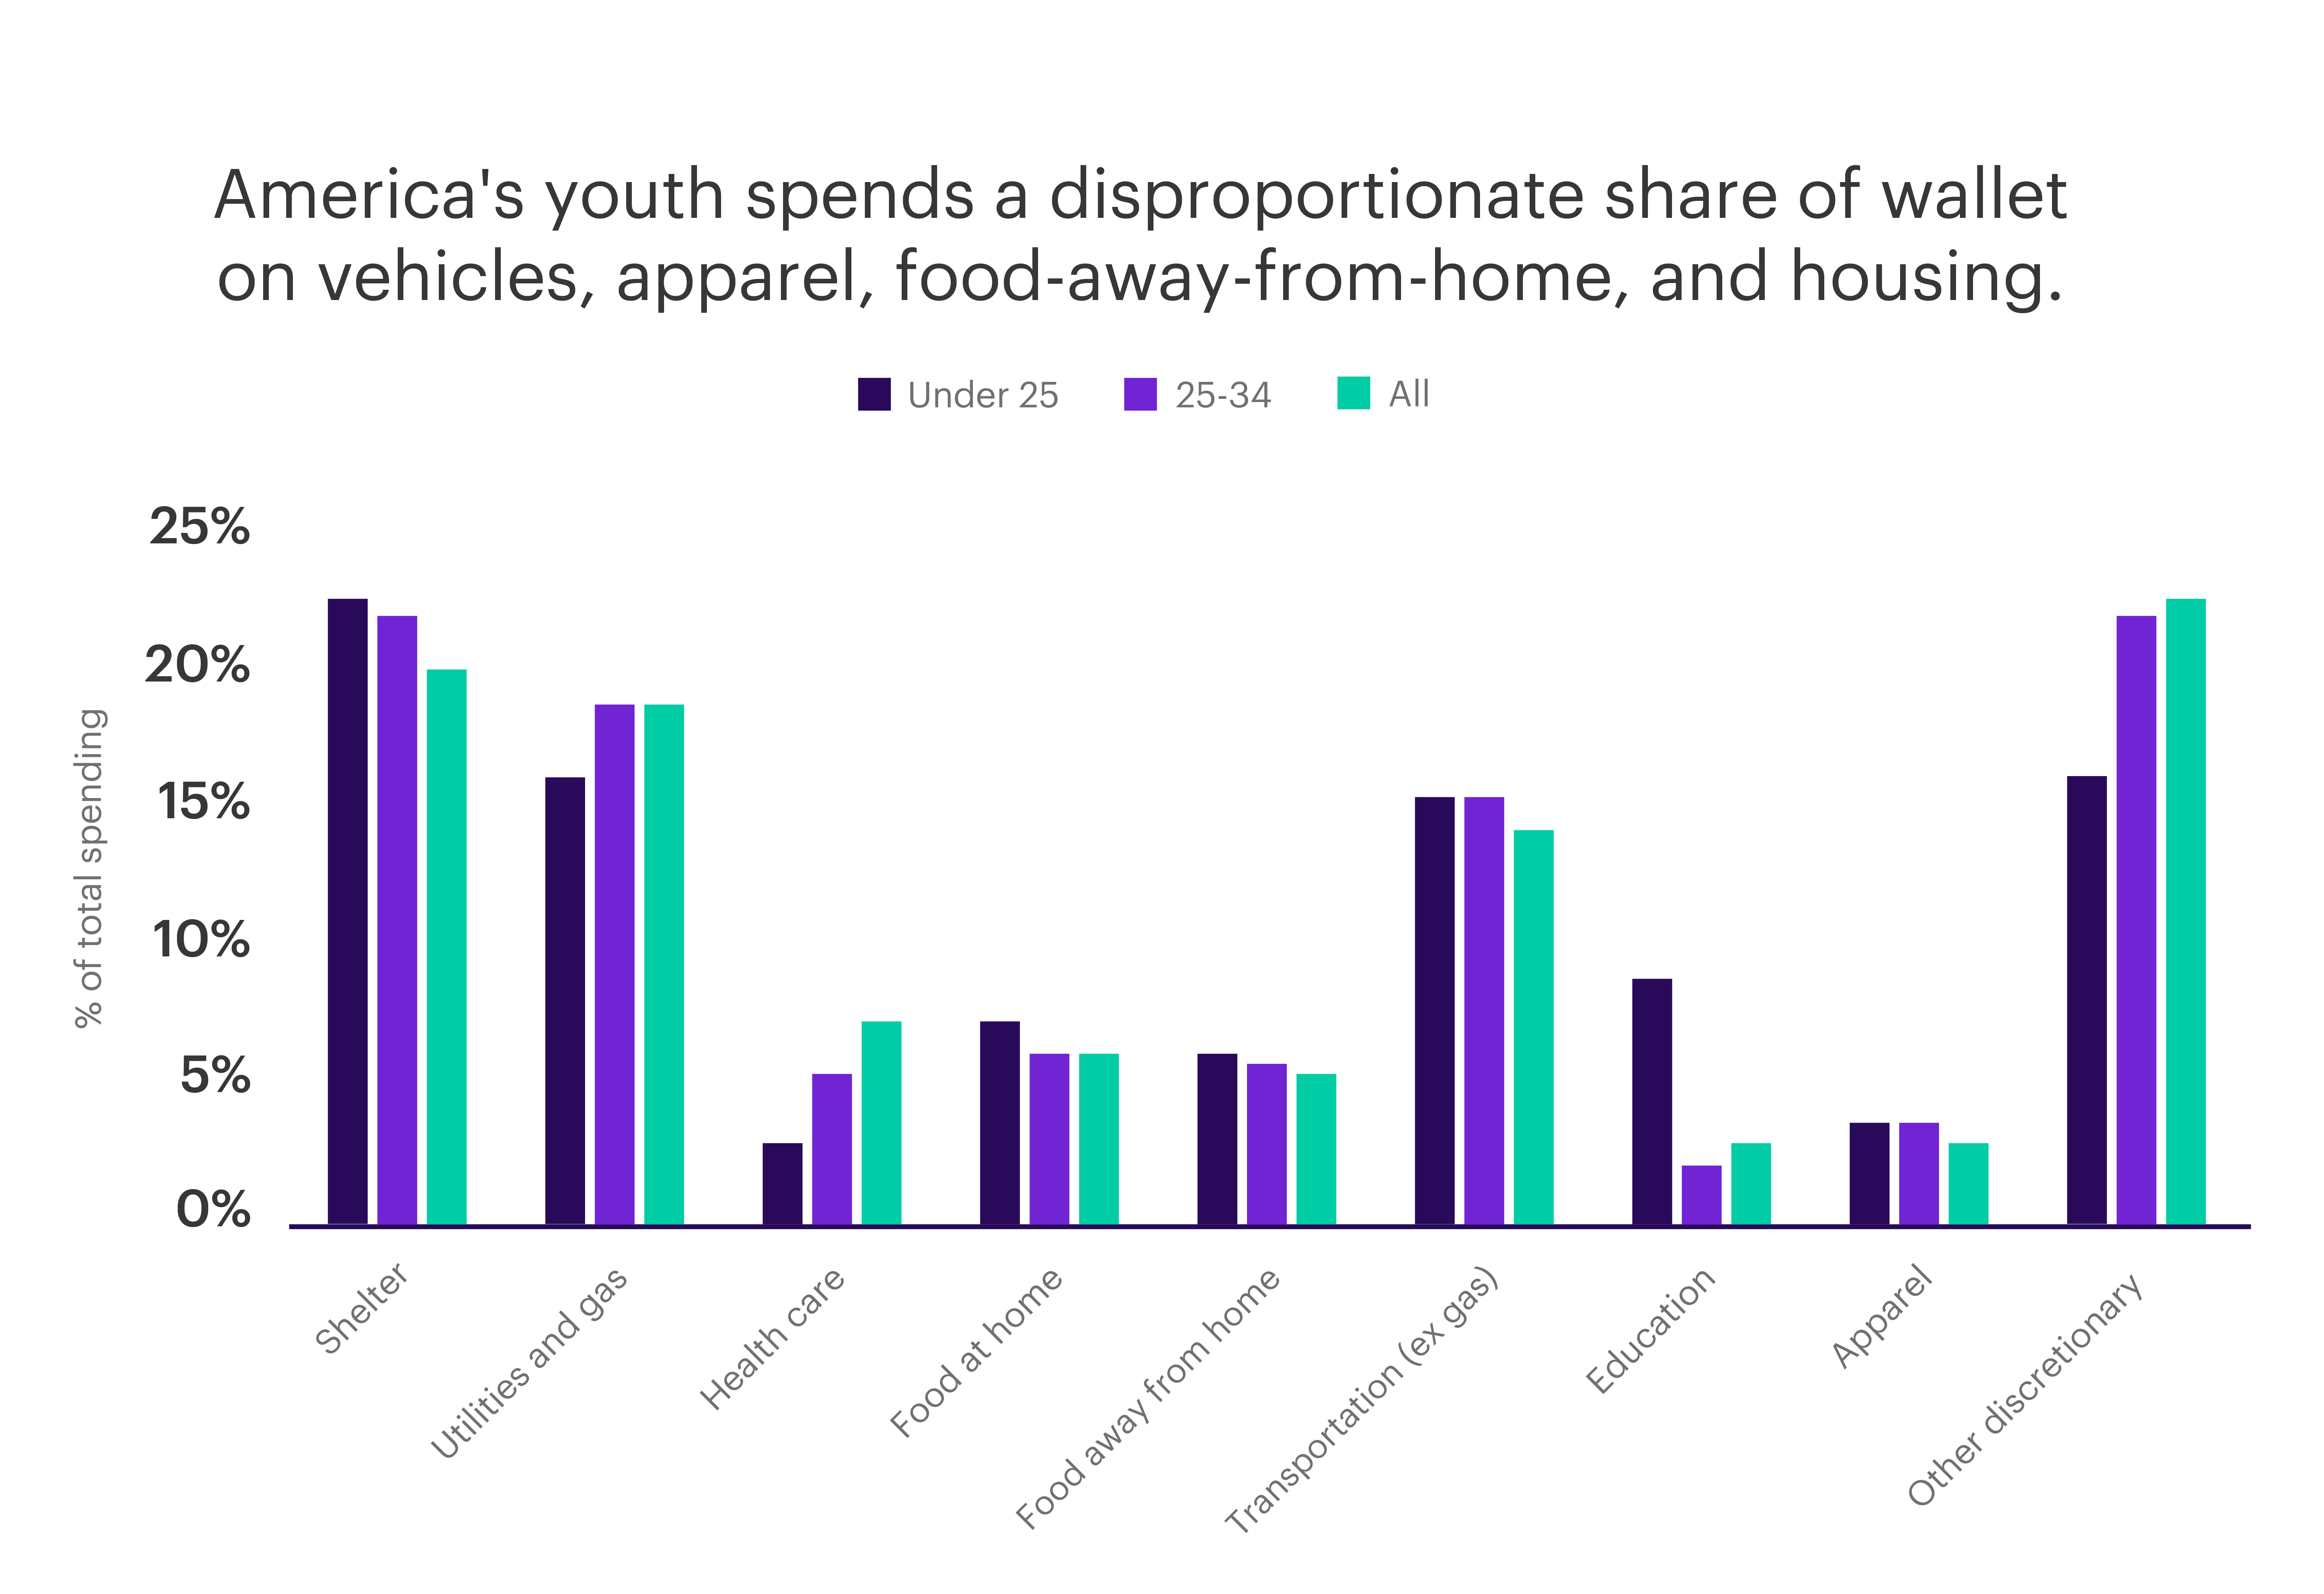 Chart - America's youth spends a disproportionate share of wallet on vehicles, apparel, food-away-from-home, and housing.